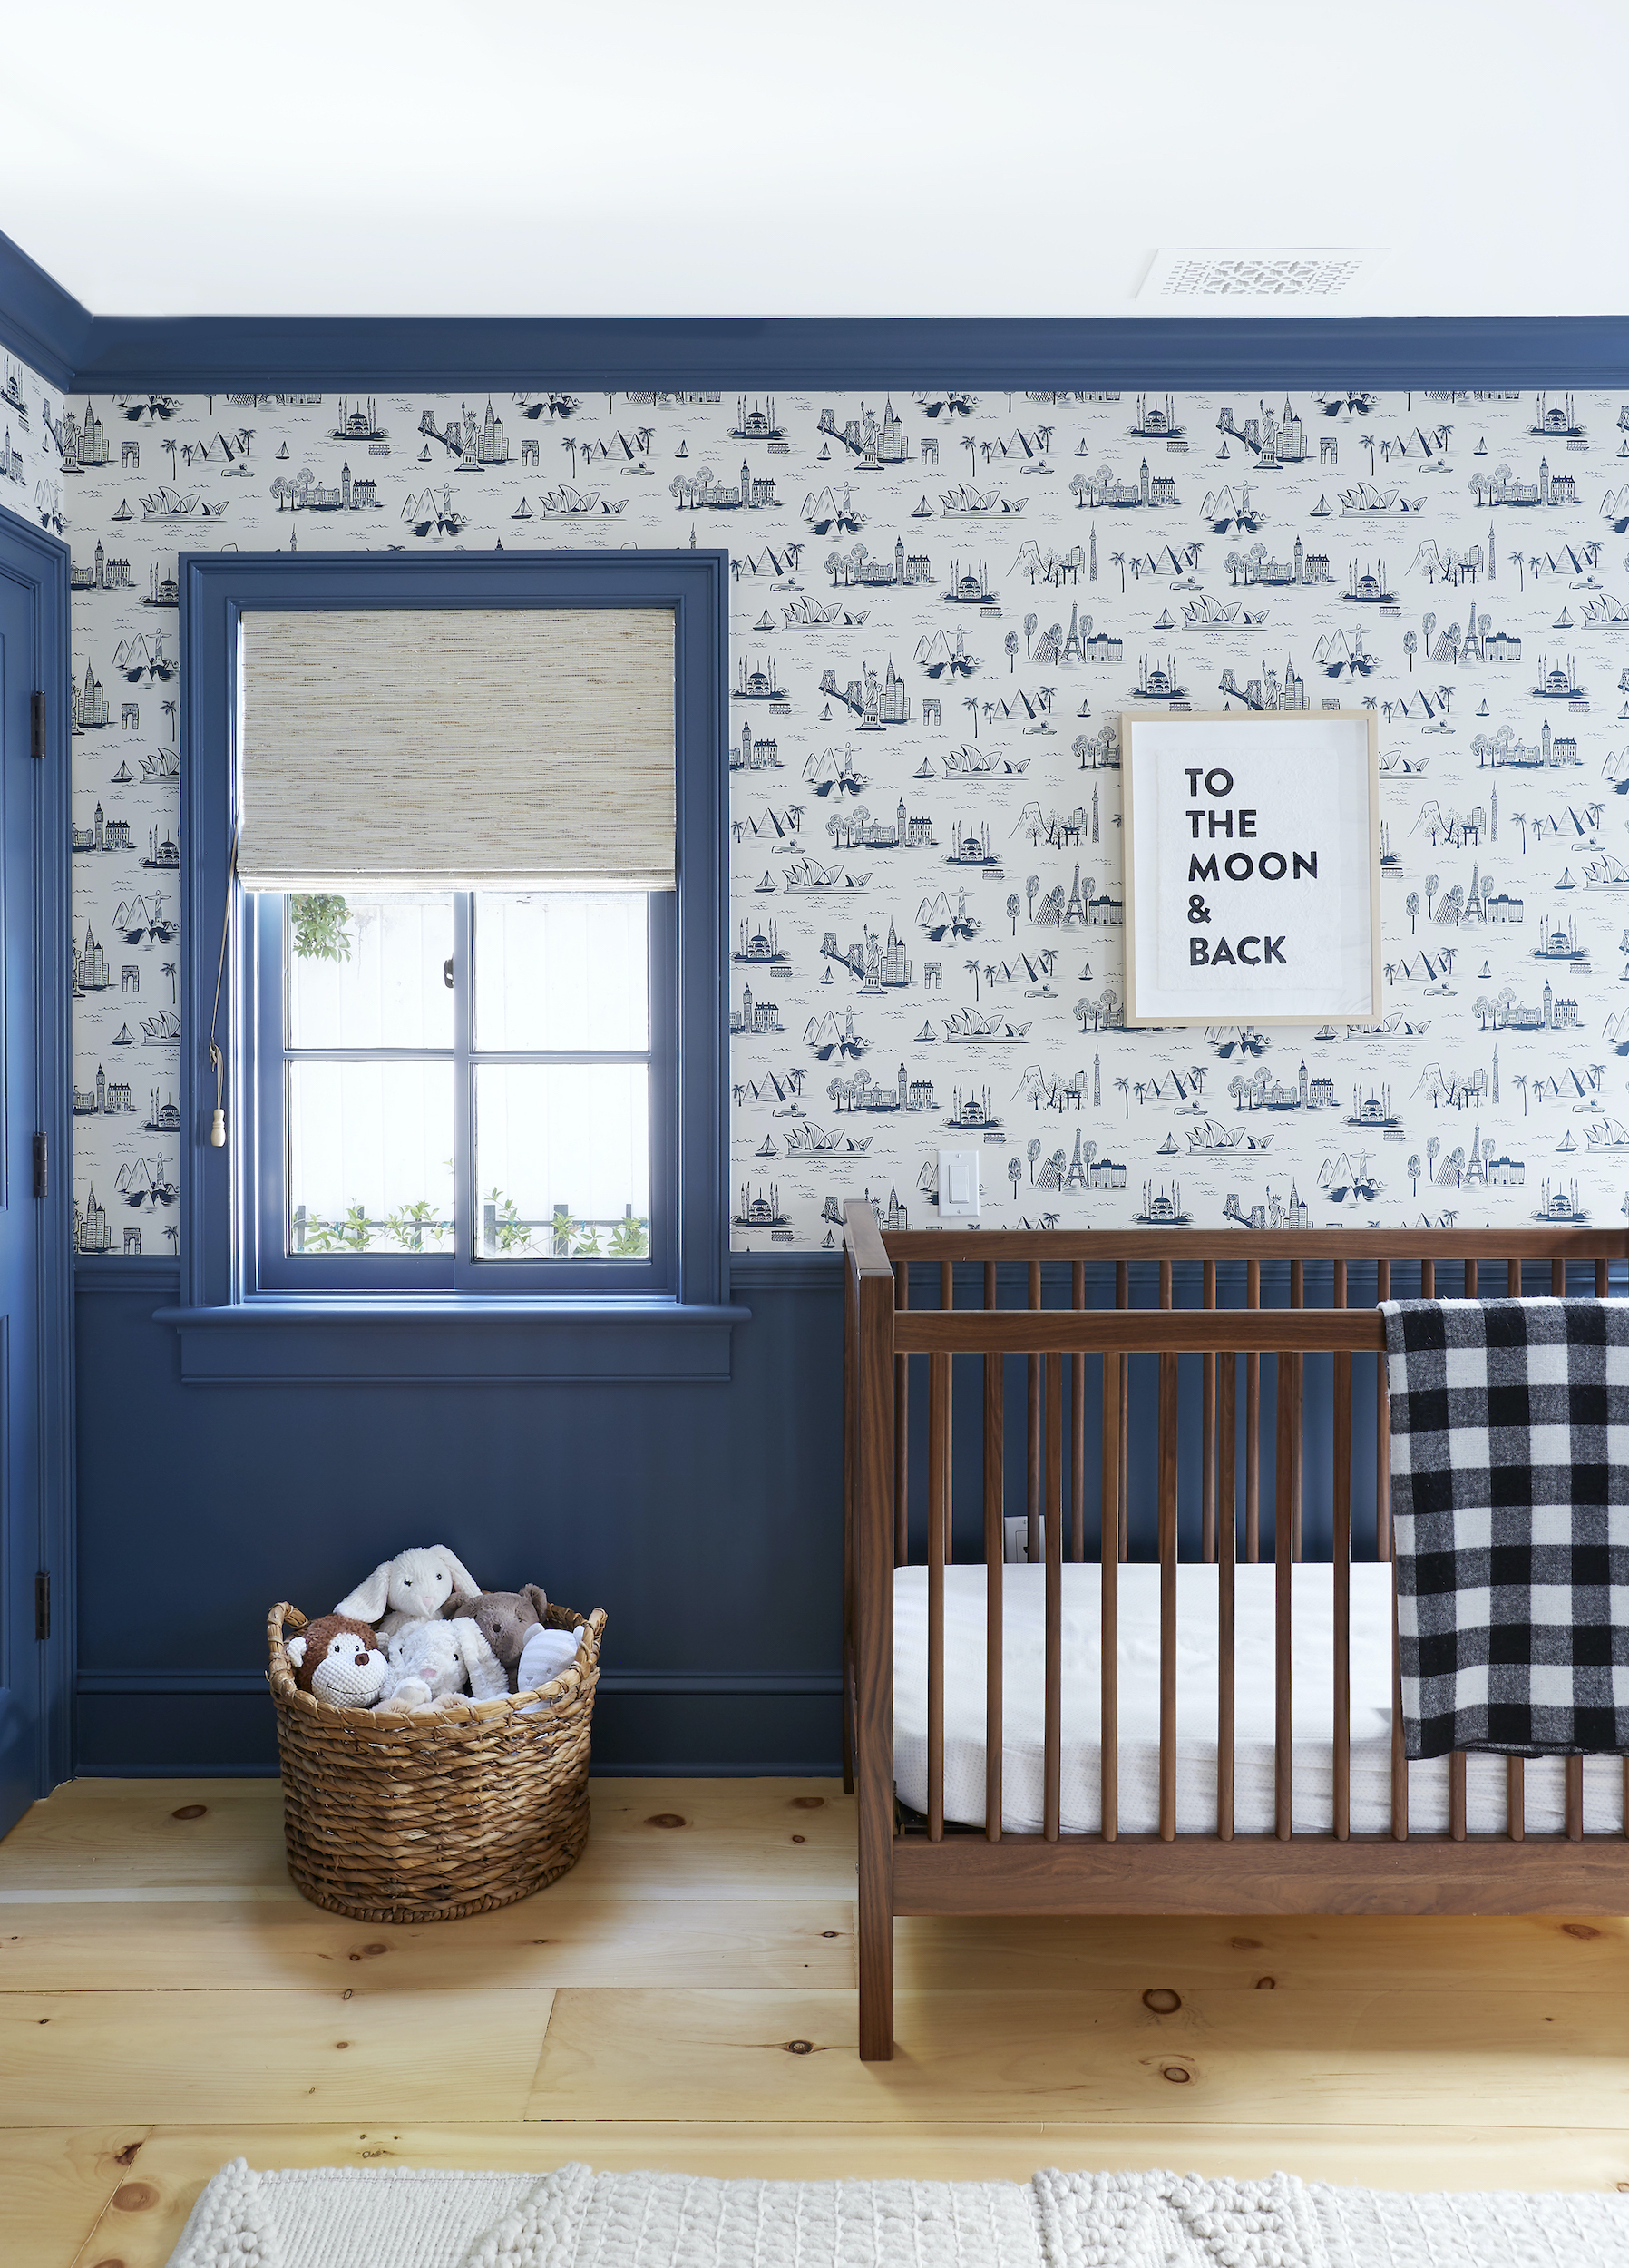 Woven shades are safe & stylish nursery window treatments against a blue trim & patterned wallpaper